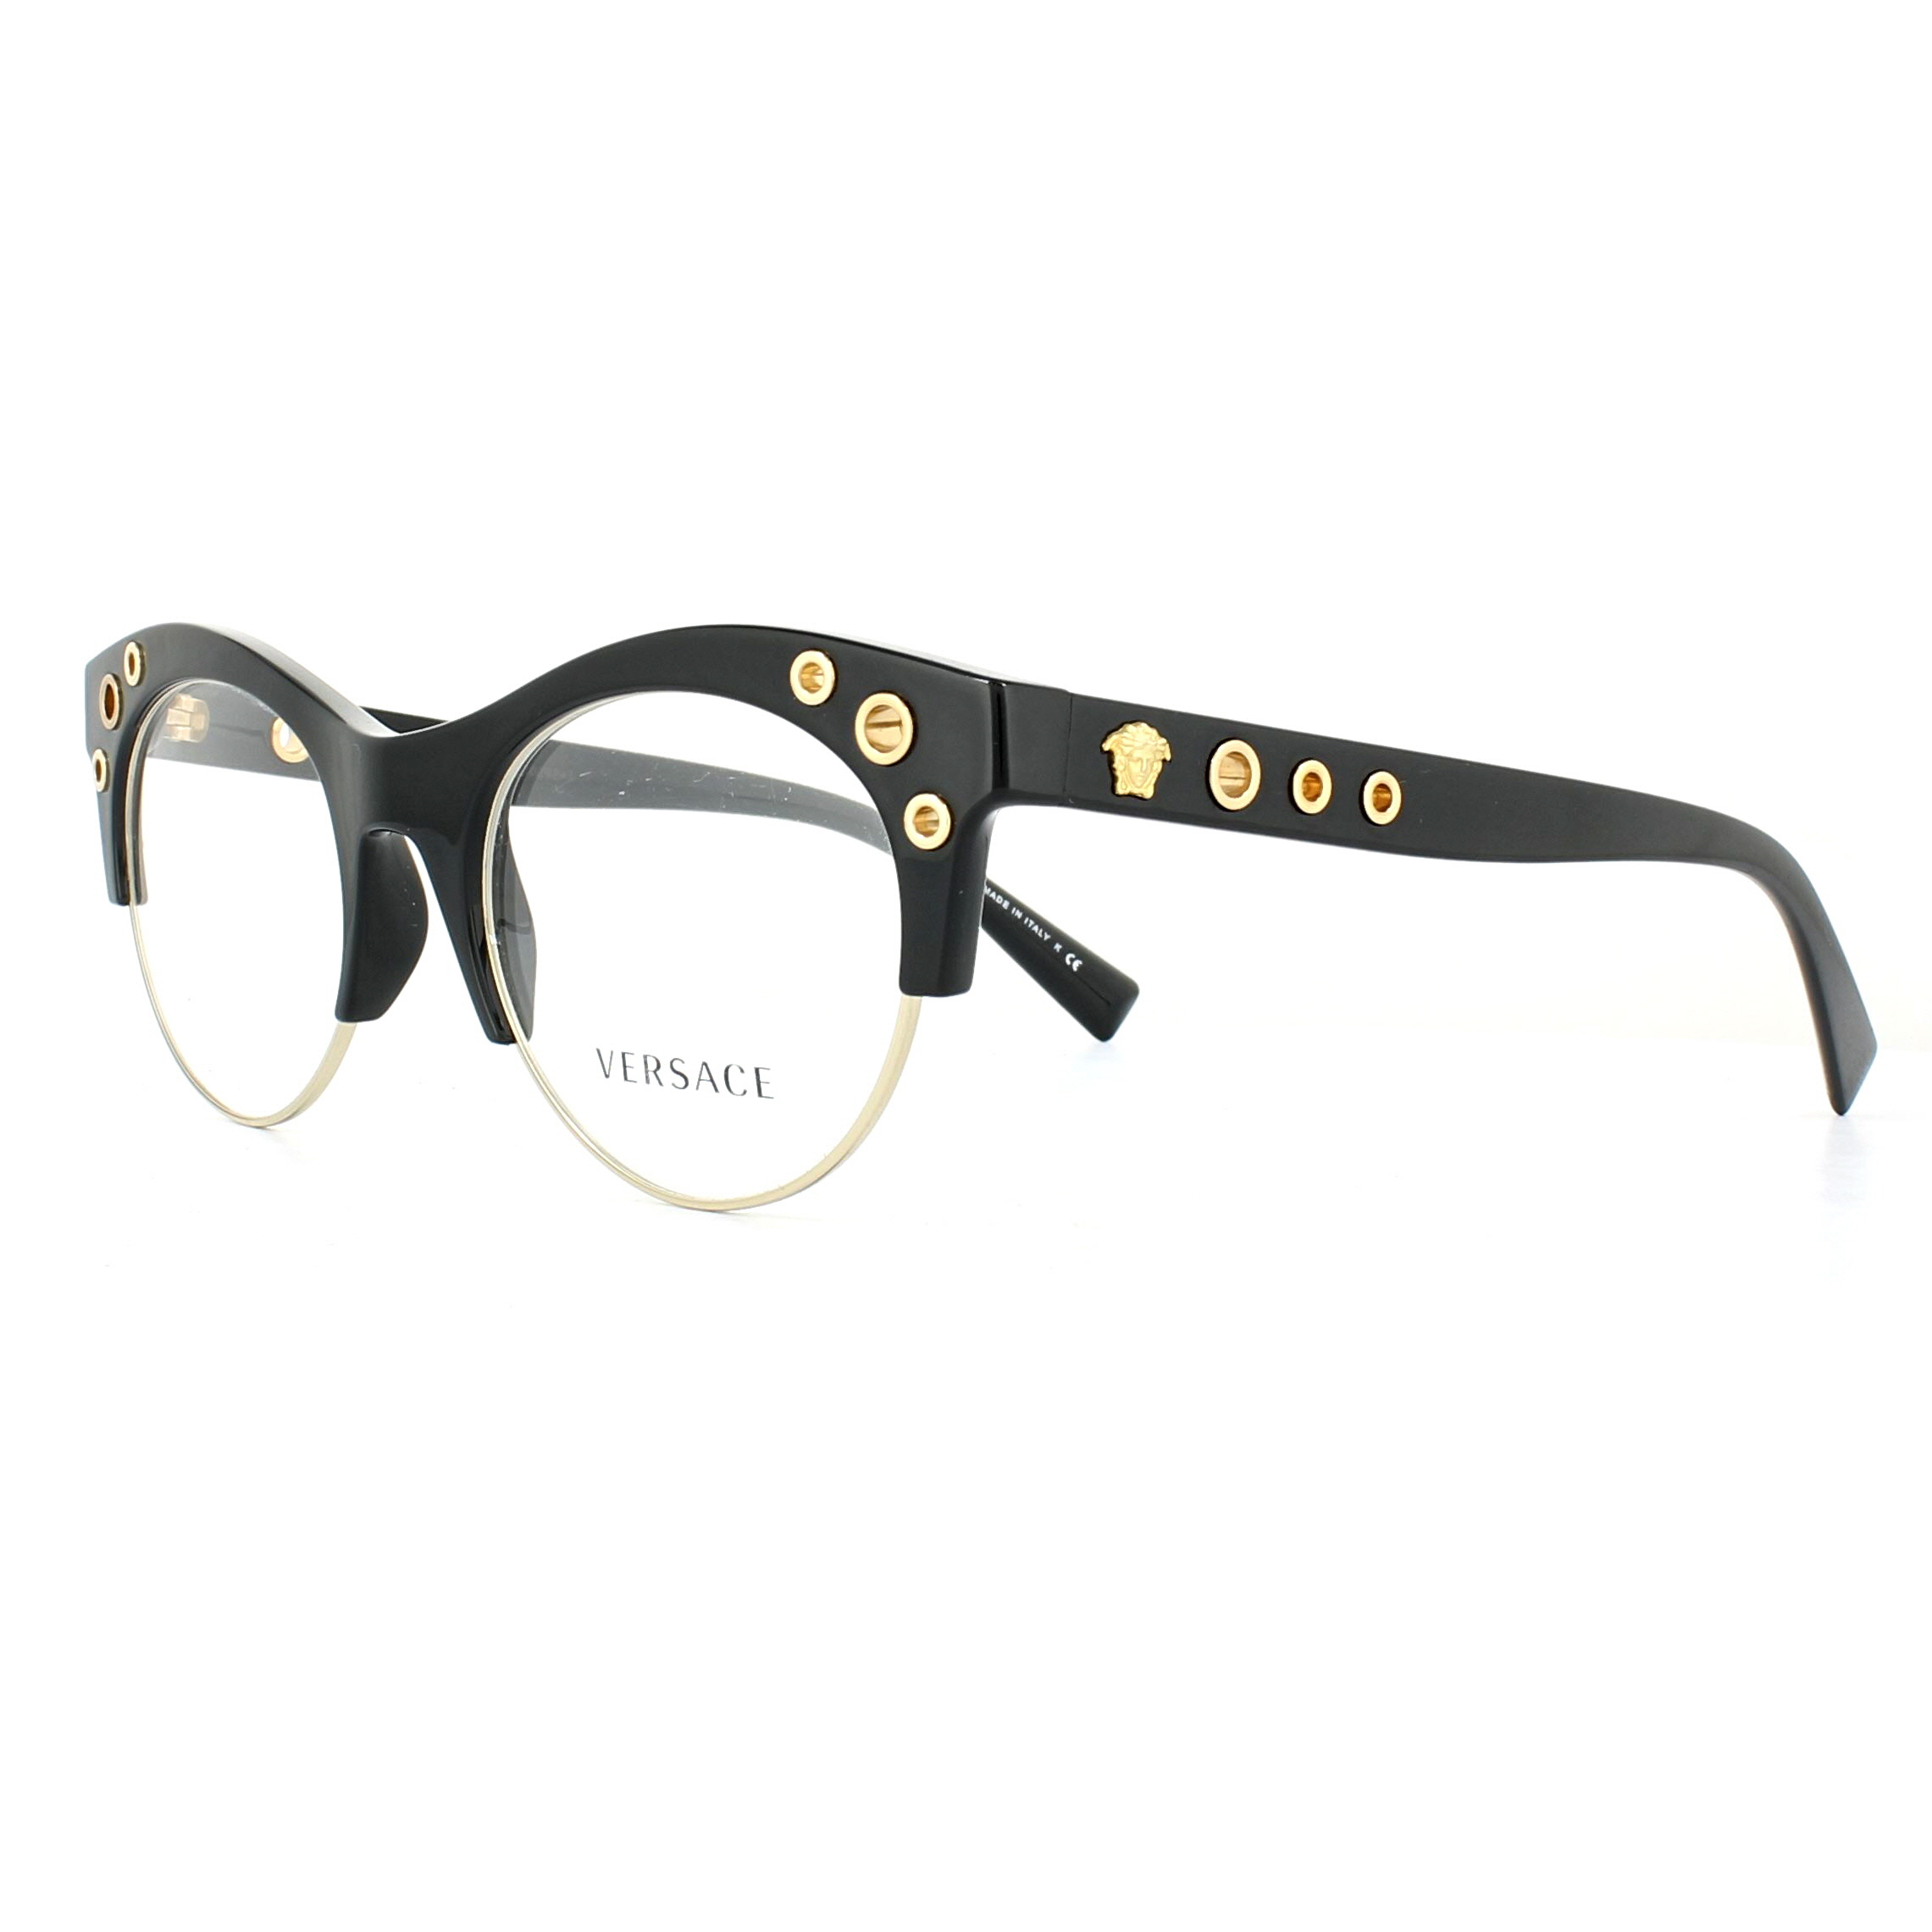 c9b35caa600 Sentinel Versace Glasses Frames 3232 GB1 Black Gold 52mm Womens